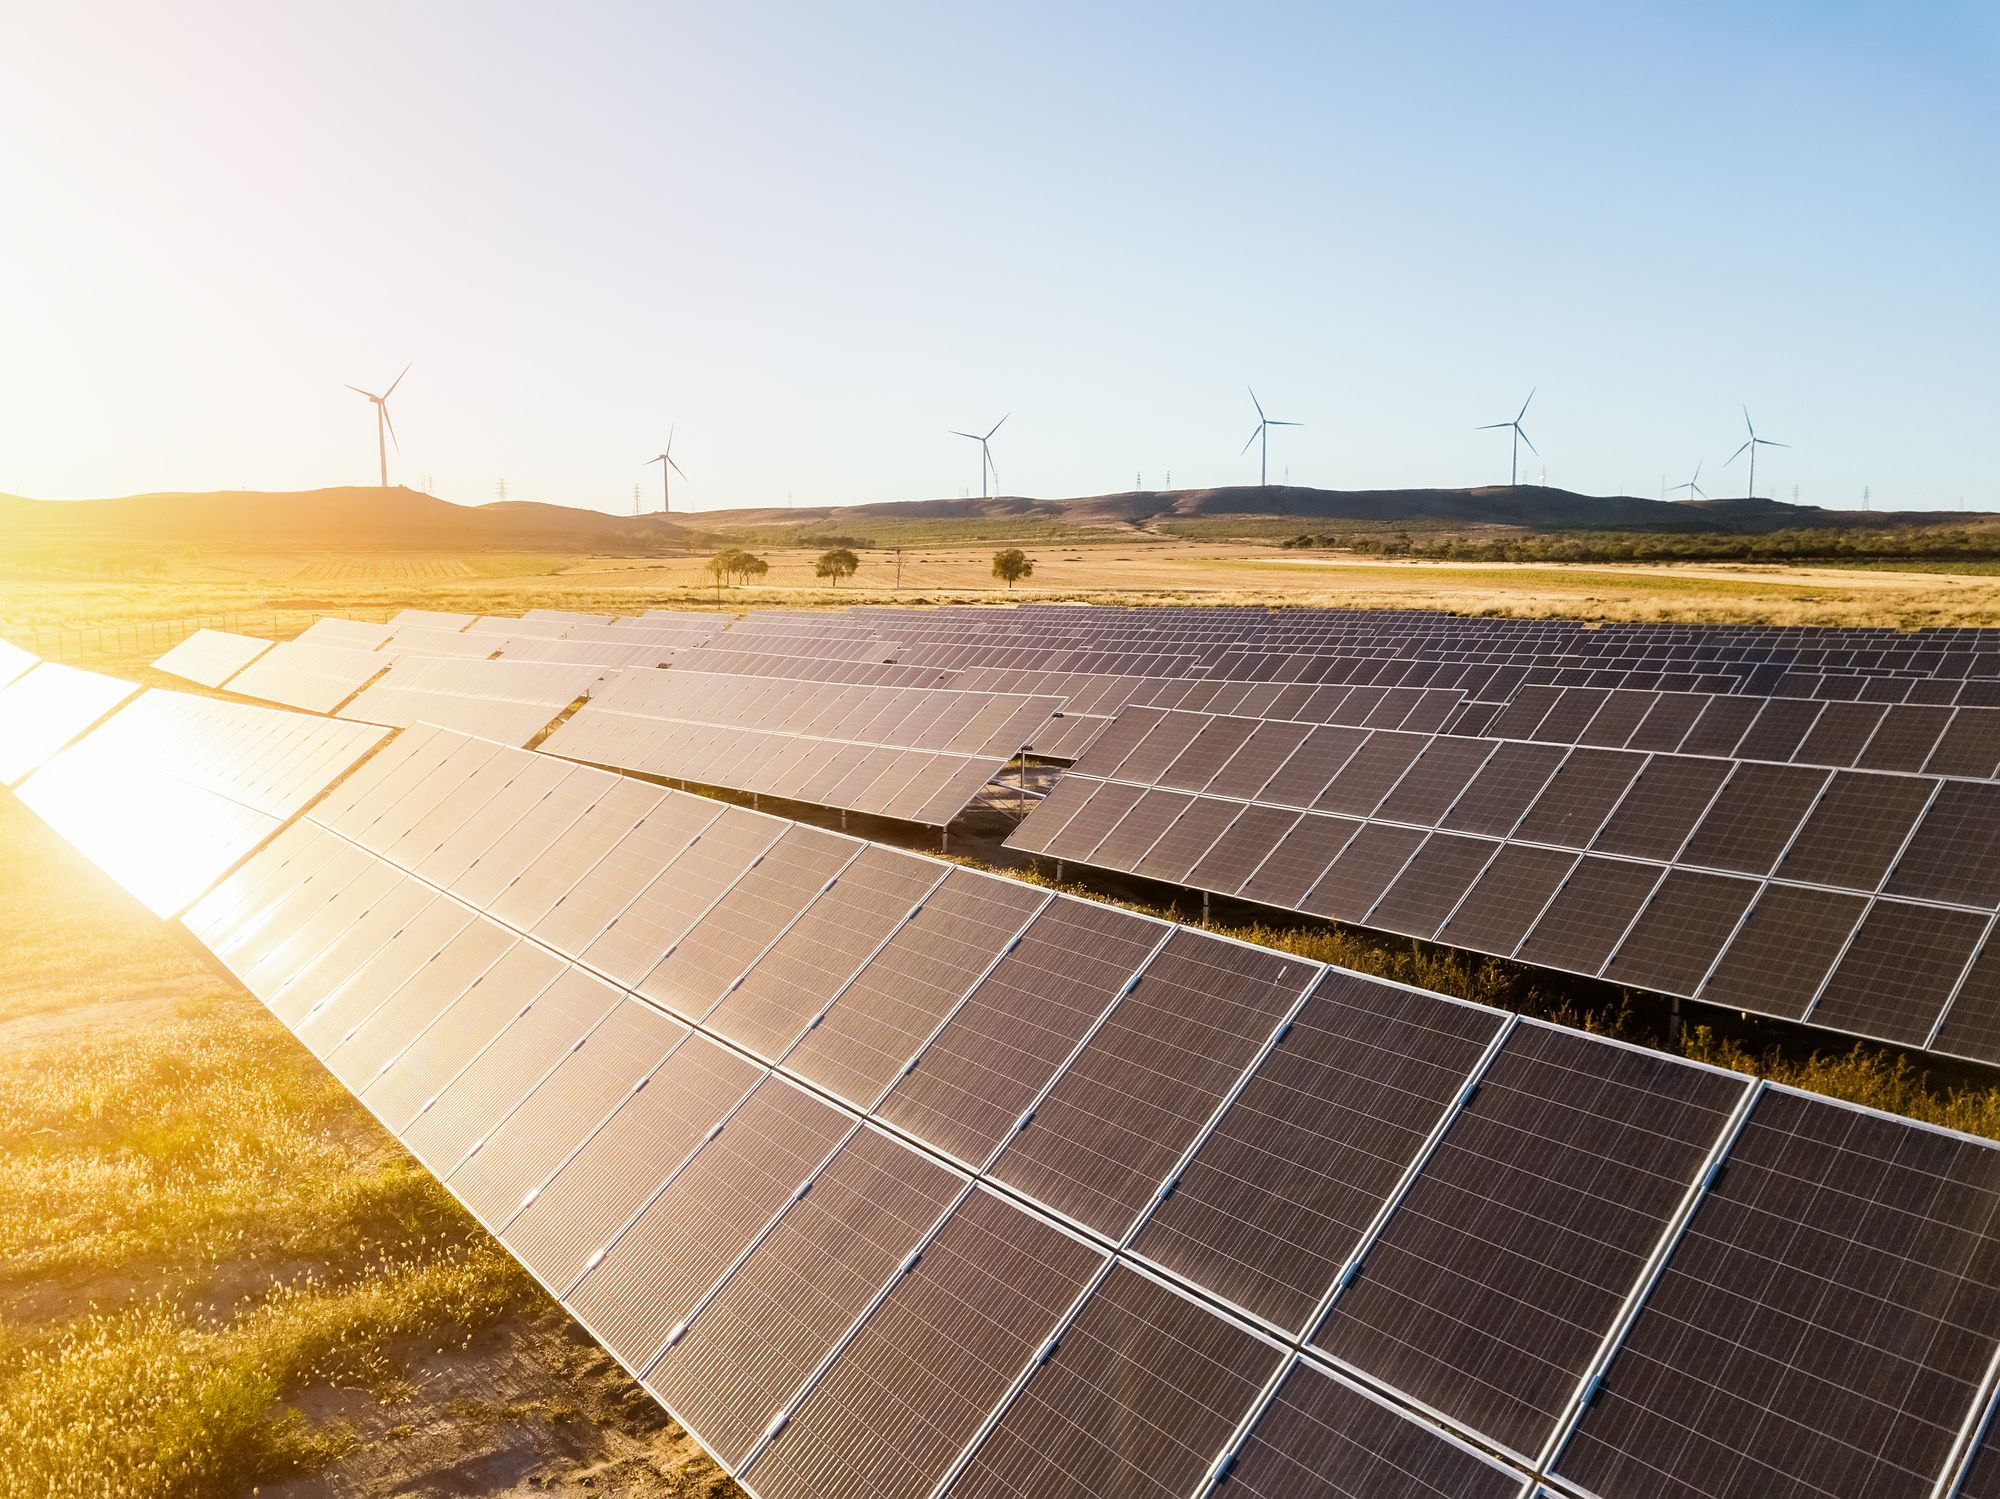 We Might Not Have Enough Materials for All the Solar Panels and Wind Turbines We Need